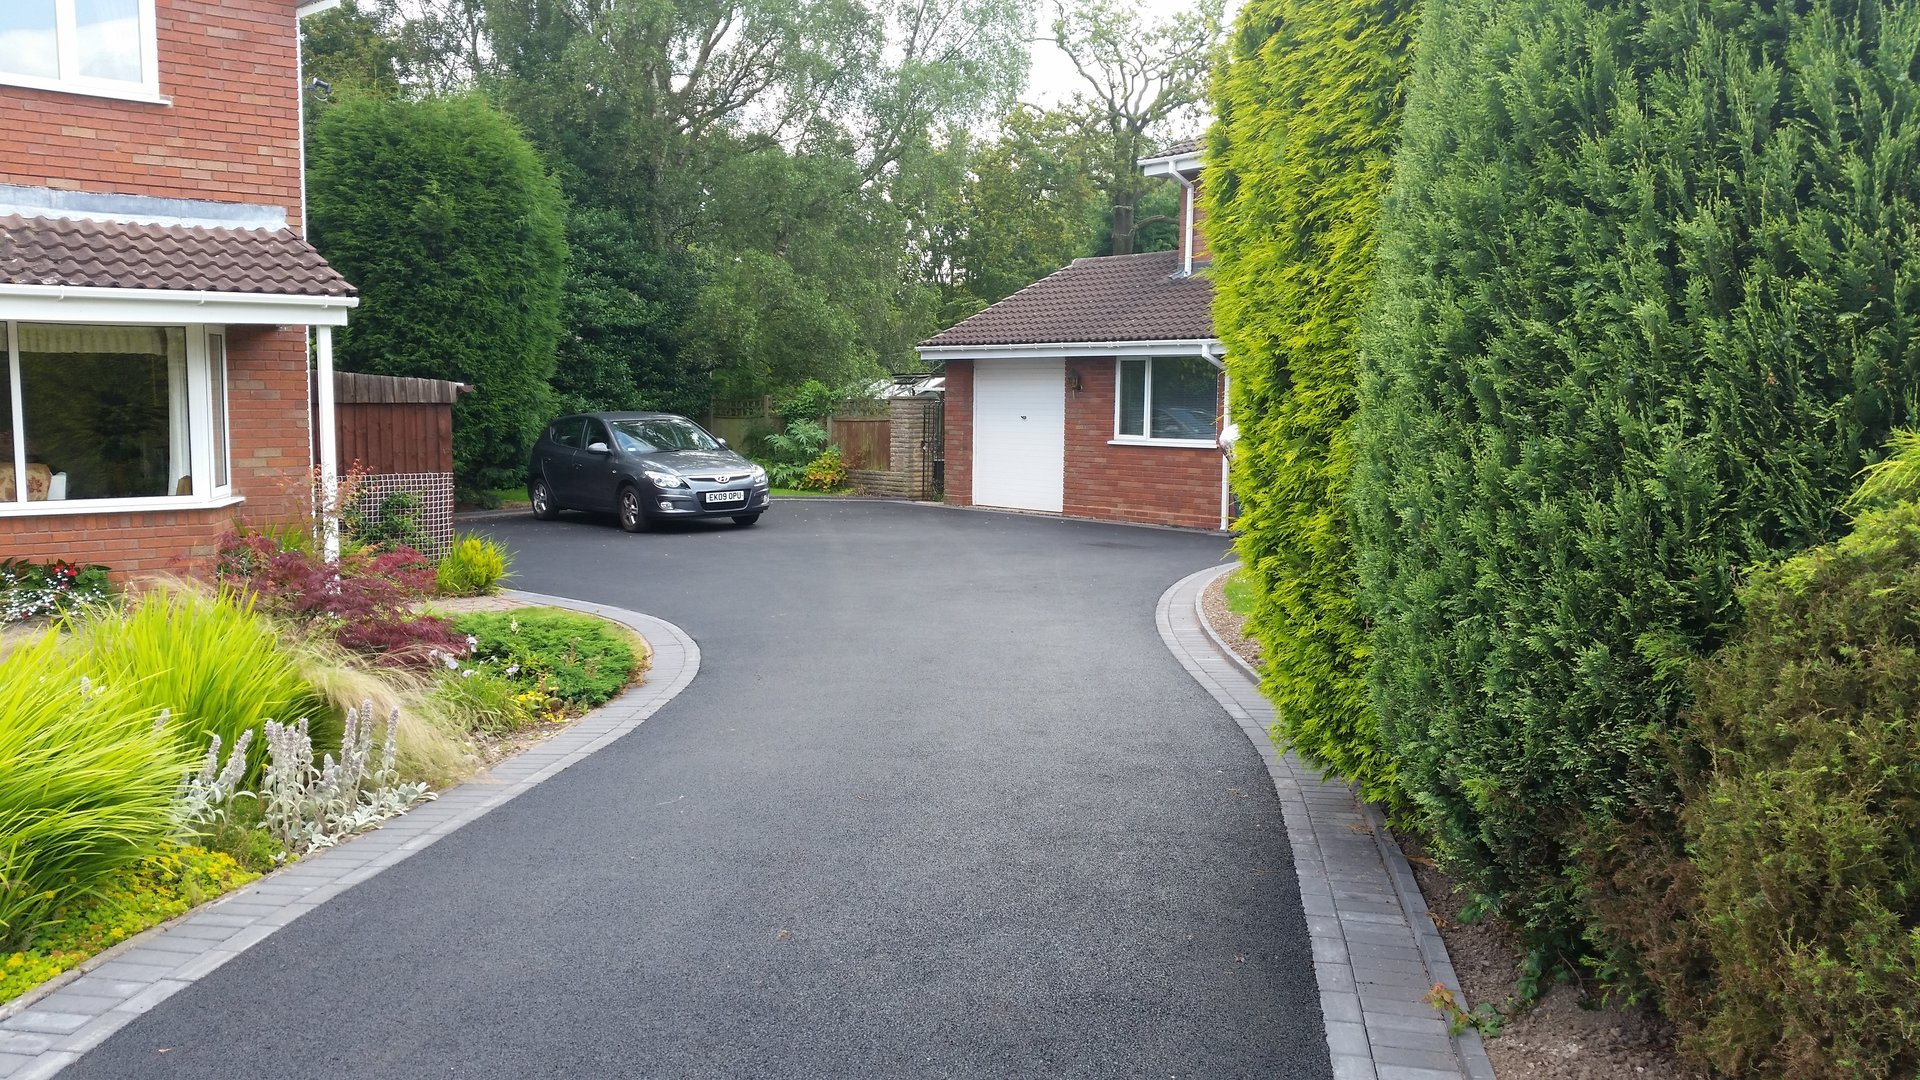 Lichfield Tarmacadam Established in 1968